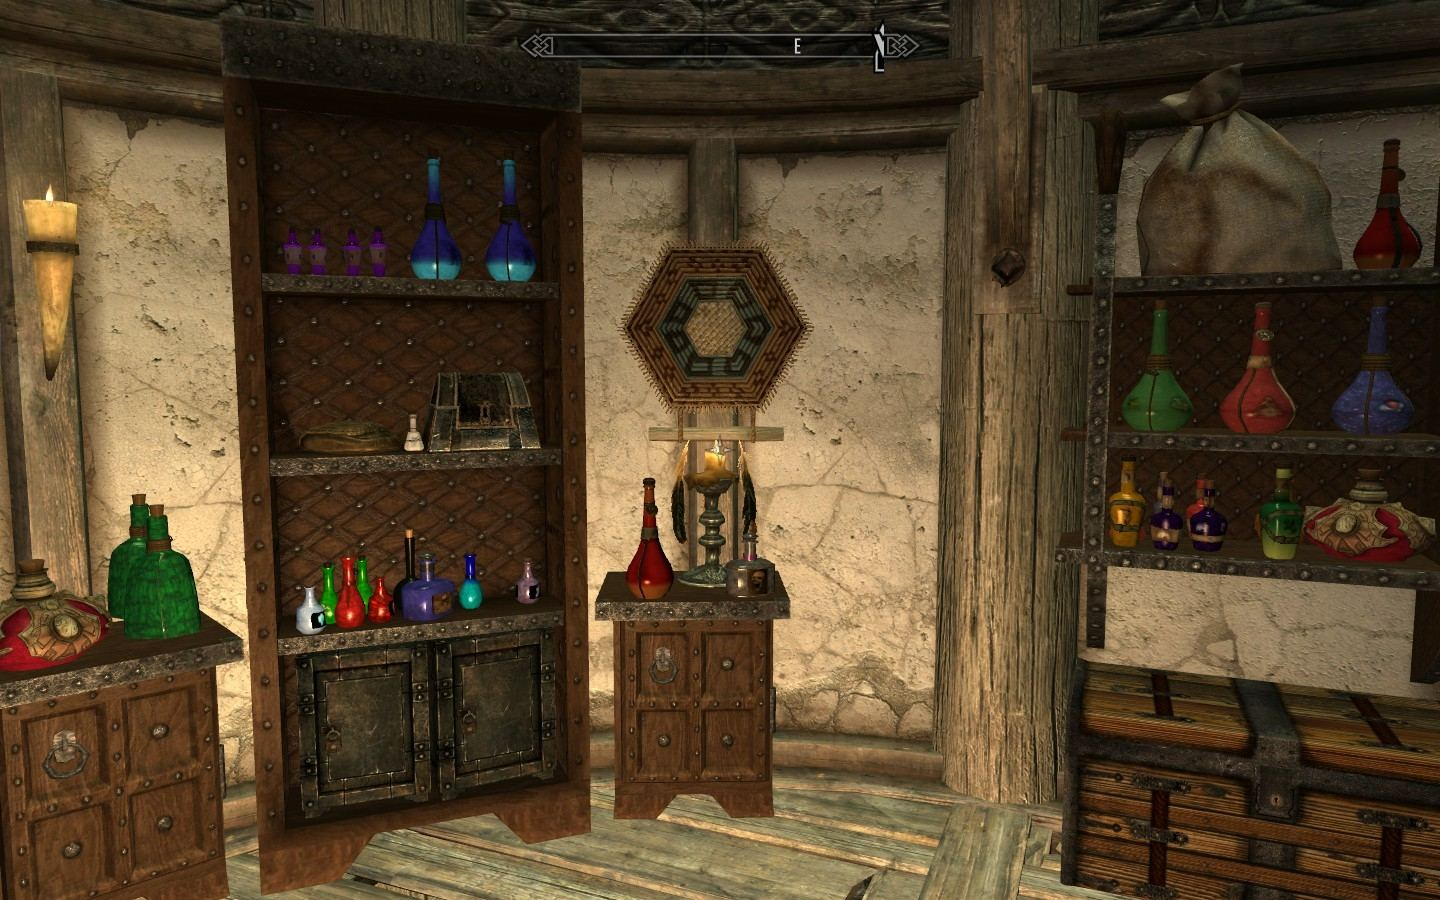 The open rafters and the rustic wood look would be great for a Germanic or  Skyrim themed room